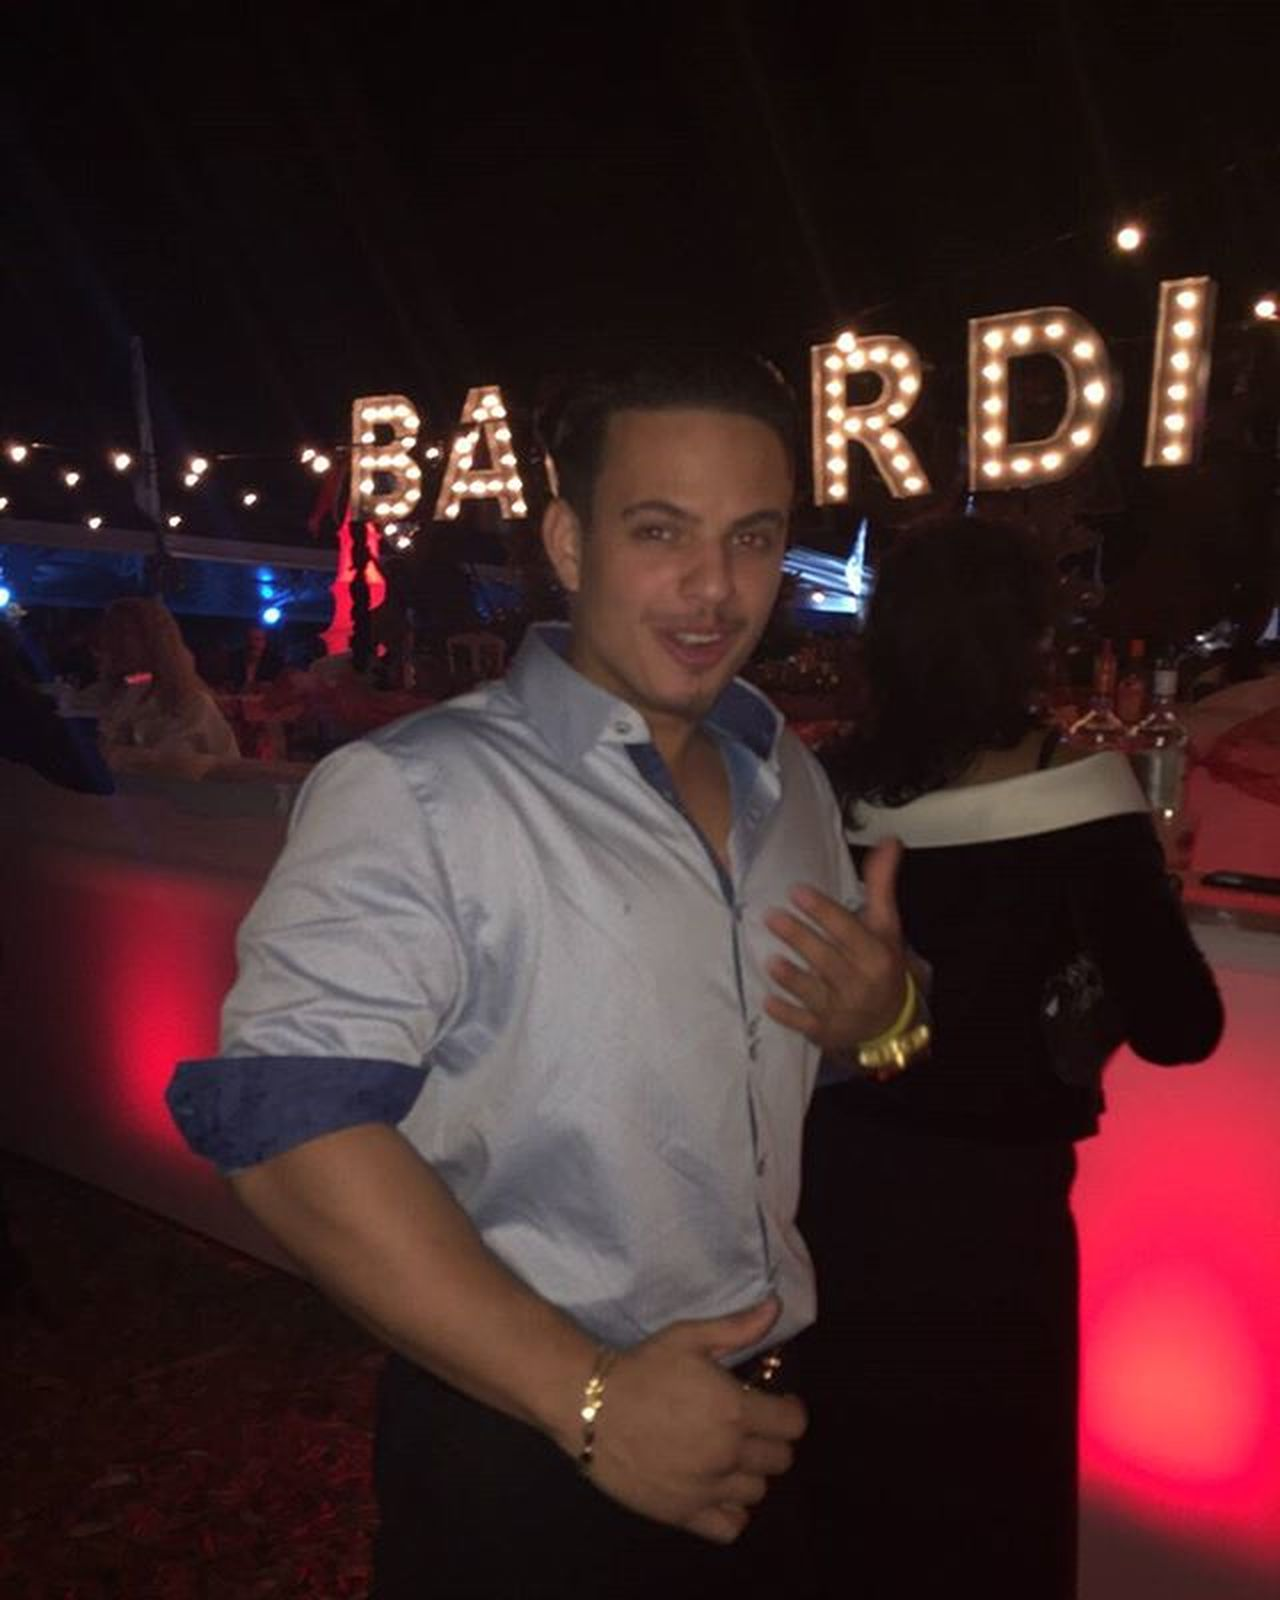 Party Fun Miami Event Club Promoting Promoter Armani GUCCI Nike Millionaire Instacollage Instalikes Instapic Insta Live Life To  The Fullest Bacardi  Drinks Jimmychoo Fashion